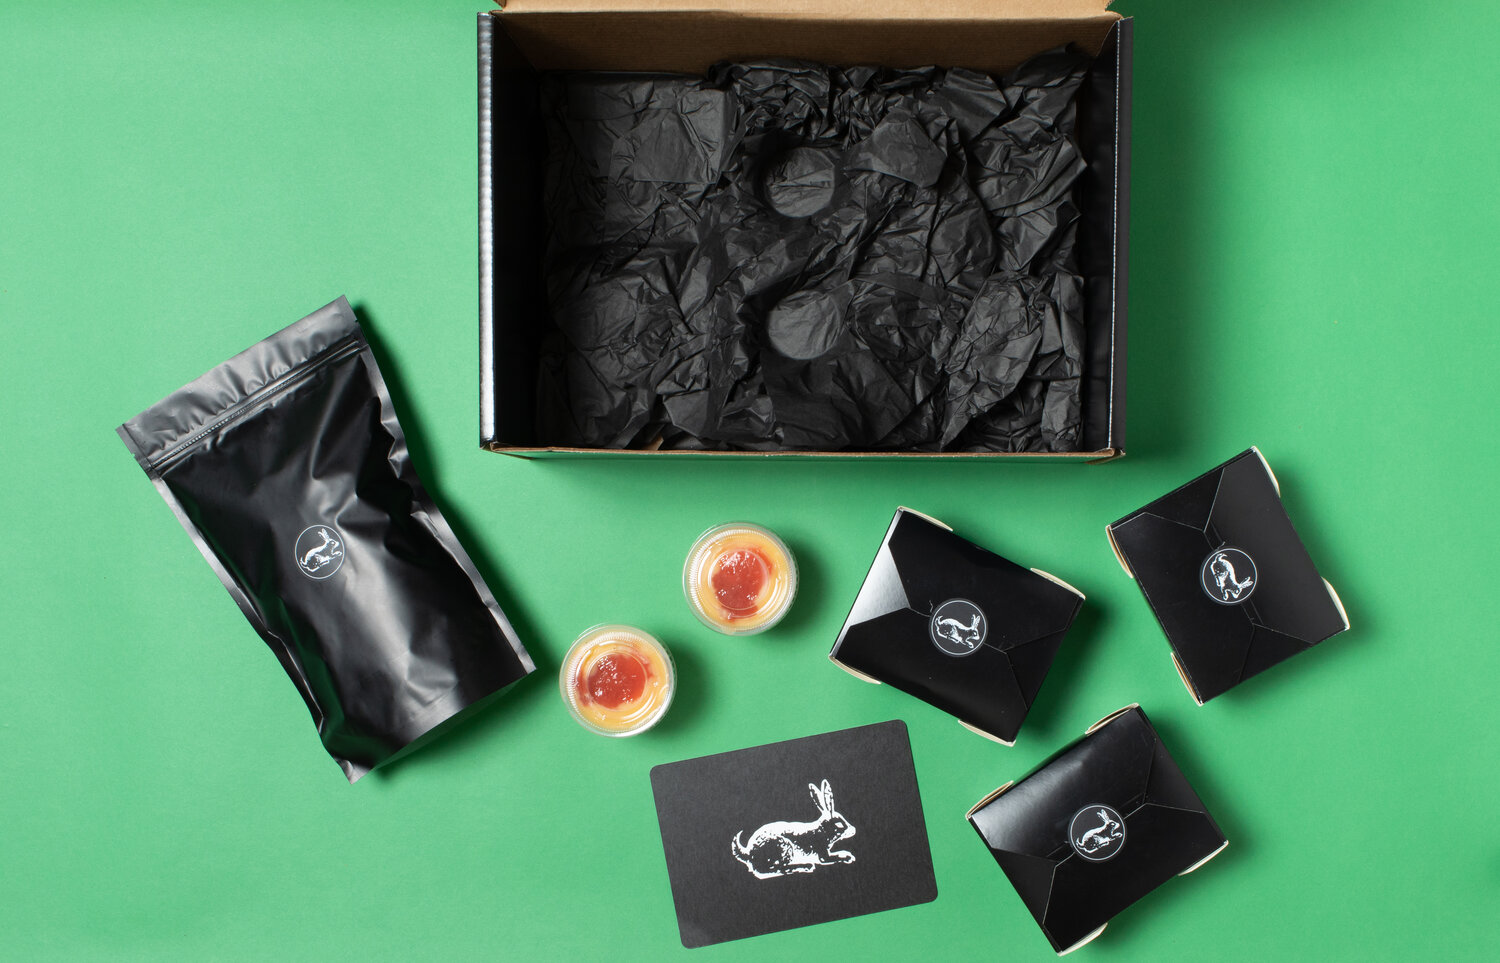 A top-down image of the boxes part of Tarsan i Jane's paella kit, with a green background